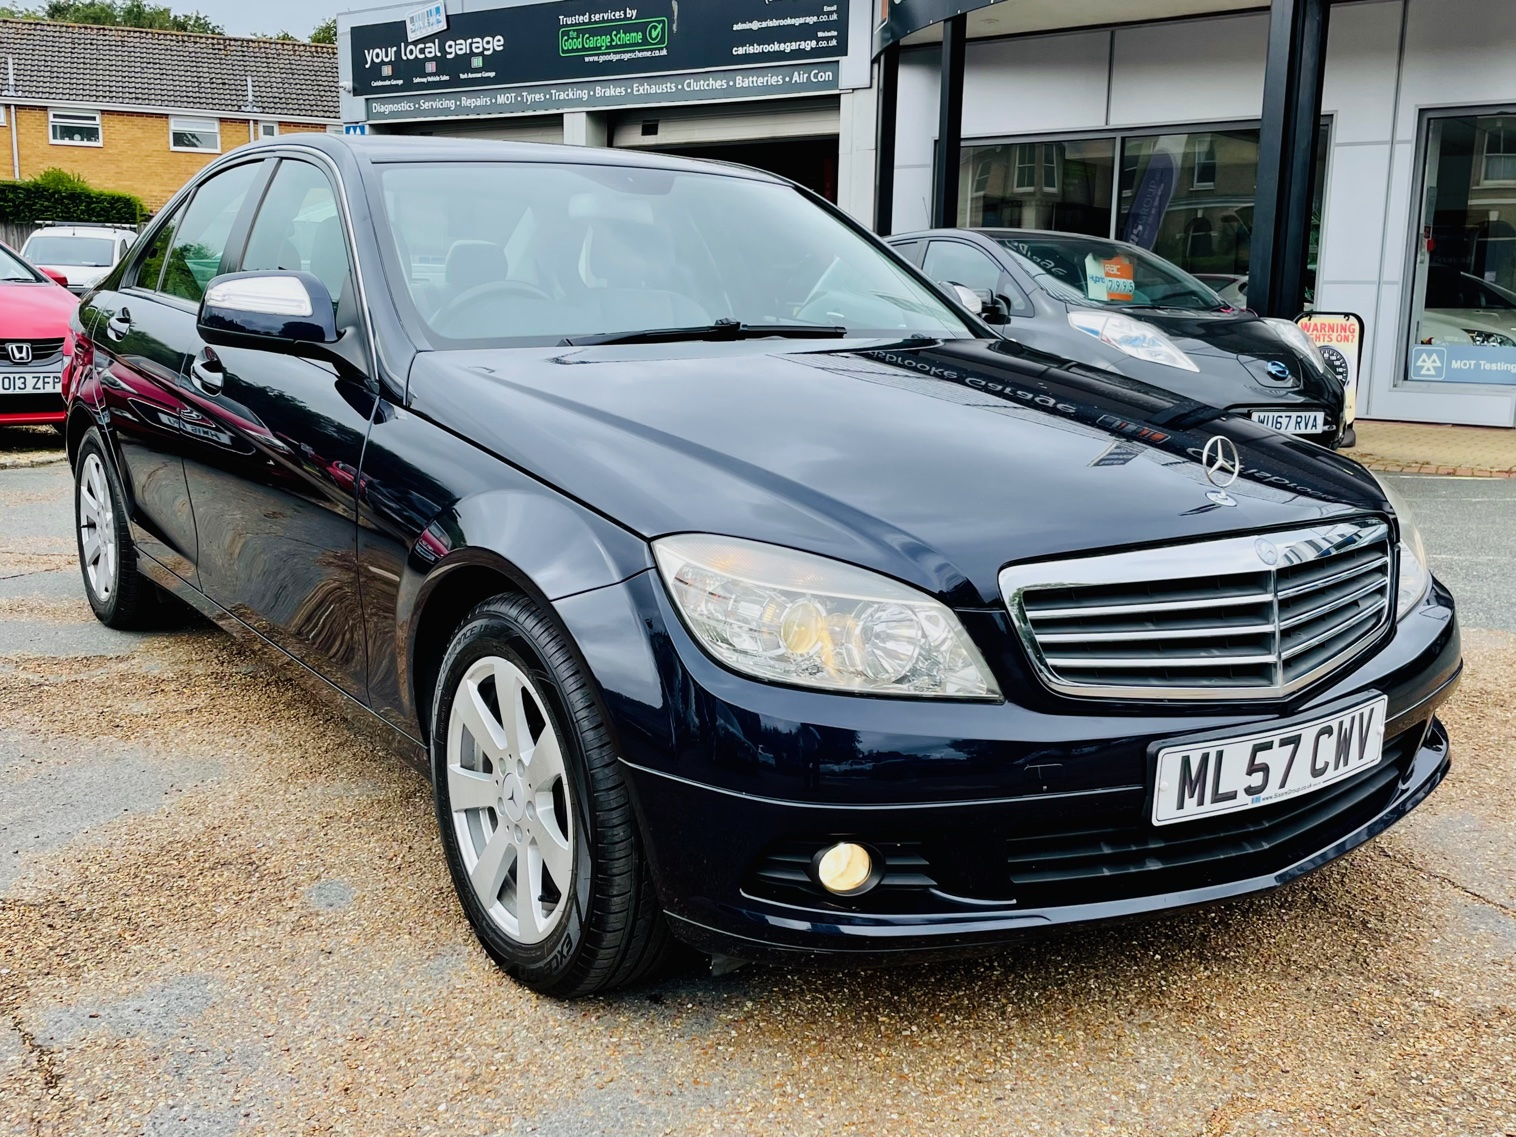 Car For Sale Mercedes C-Class - ML57CWV Sixers Group Image #1